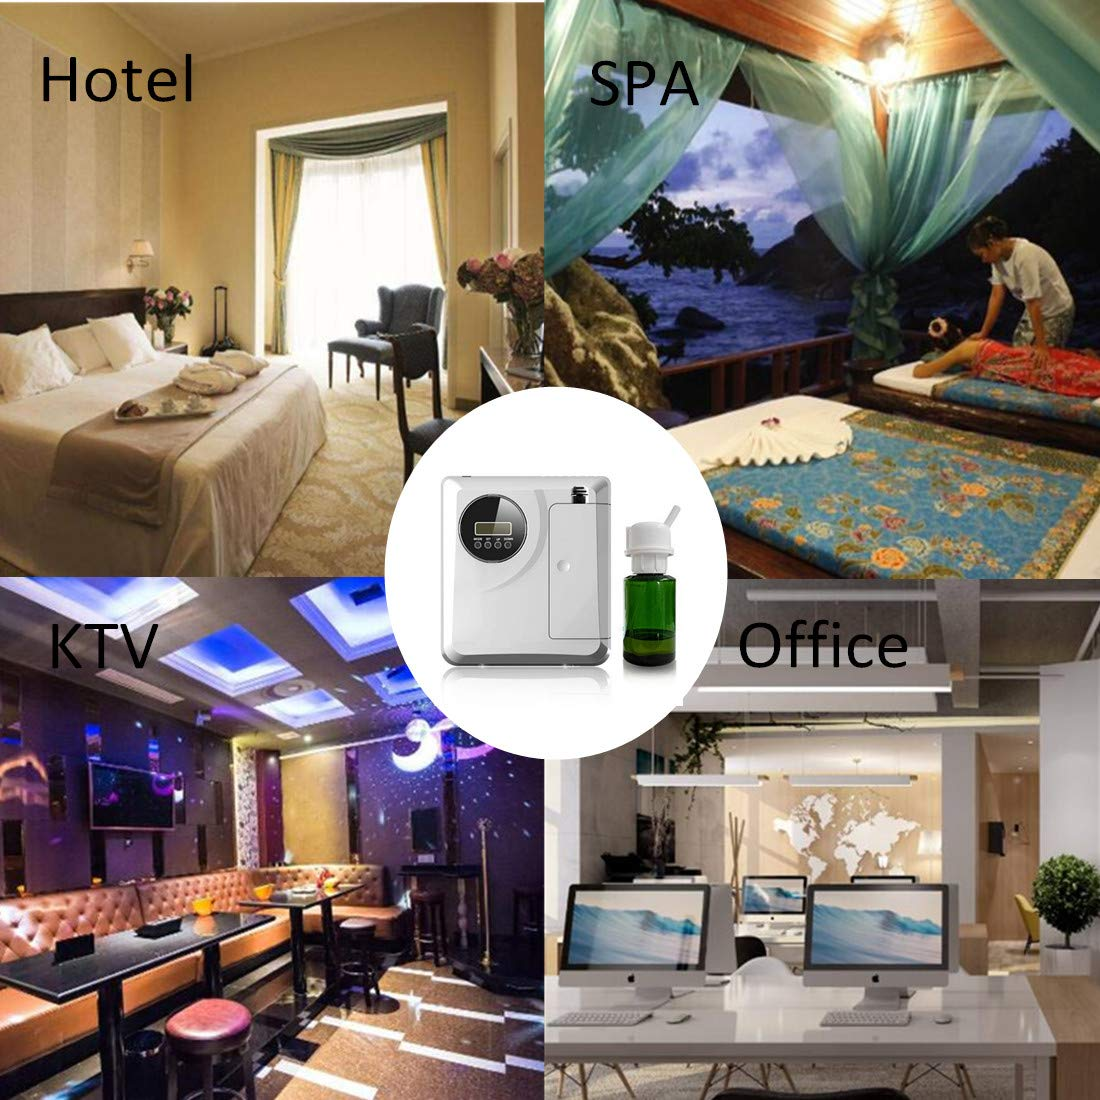 Kevinleo Scent Air Machine Aroma,Video Operation,Waterless,Flexible Work Time(Monday-Sunday),12V USA Plug,150ml Refill Bottle,Stand on Table or Mount on Wall,Fragrance Air Dispenser at Hotel SPA KTV by Kevinleo (Image #10)